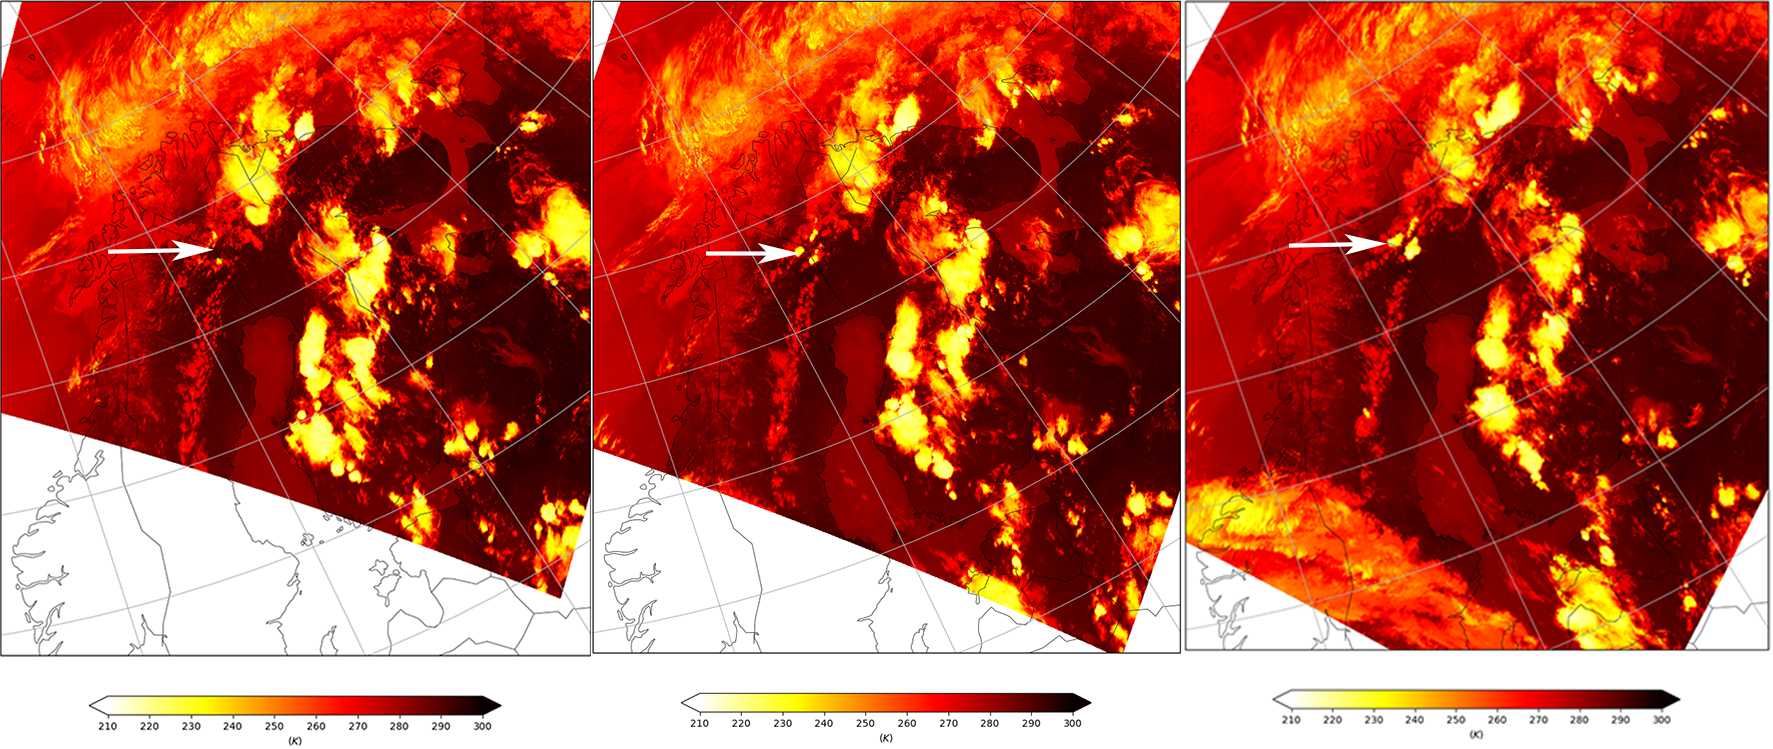 AVHRR Brightness Temperature from Metop-A at 16:35 UTC (left), Metop-C at 17:16 (middle) and Metop-B at 17:49 UTC (right)